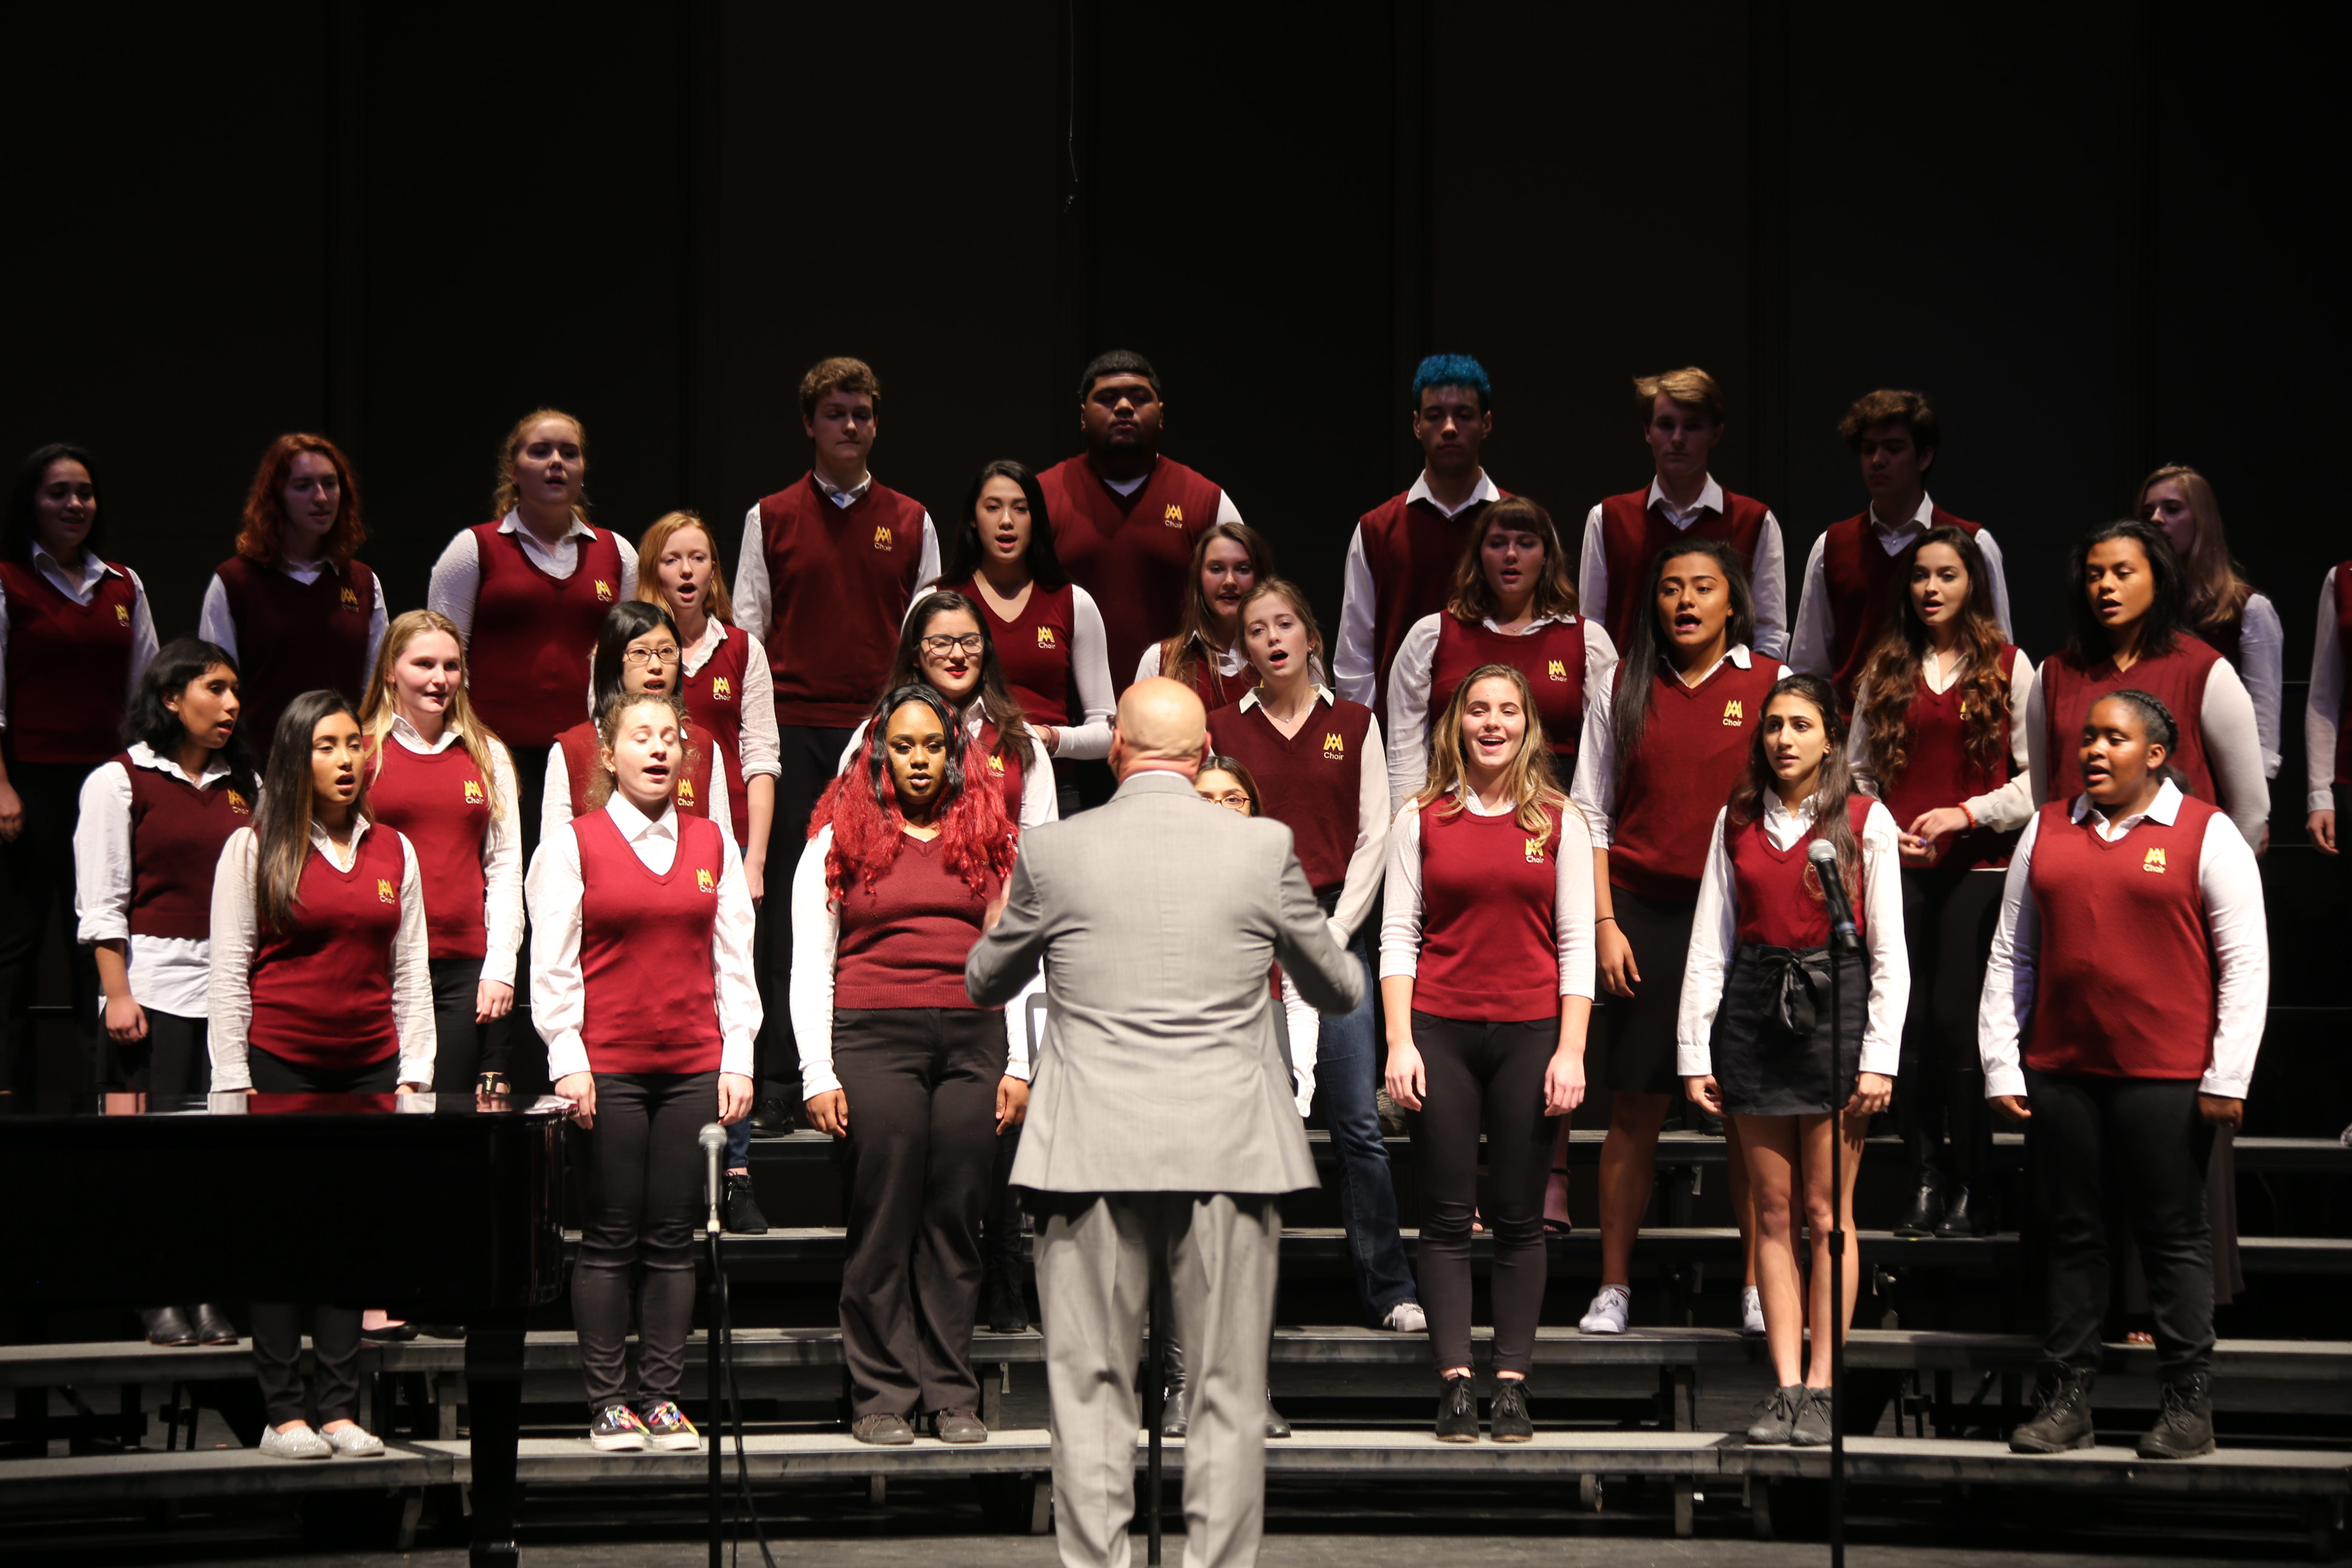 Choir and guitar concert rings in holiday spirit